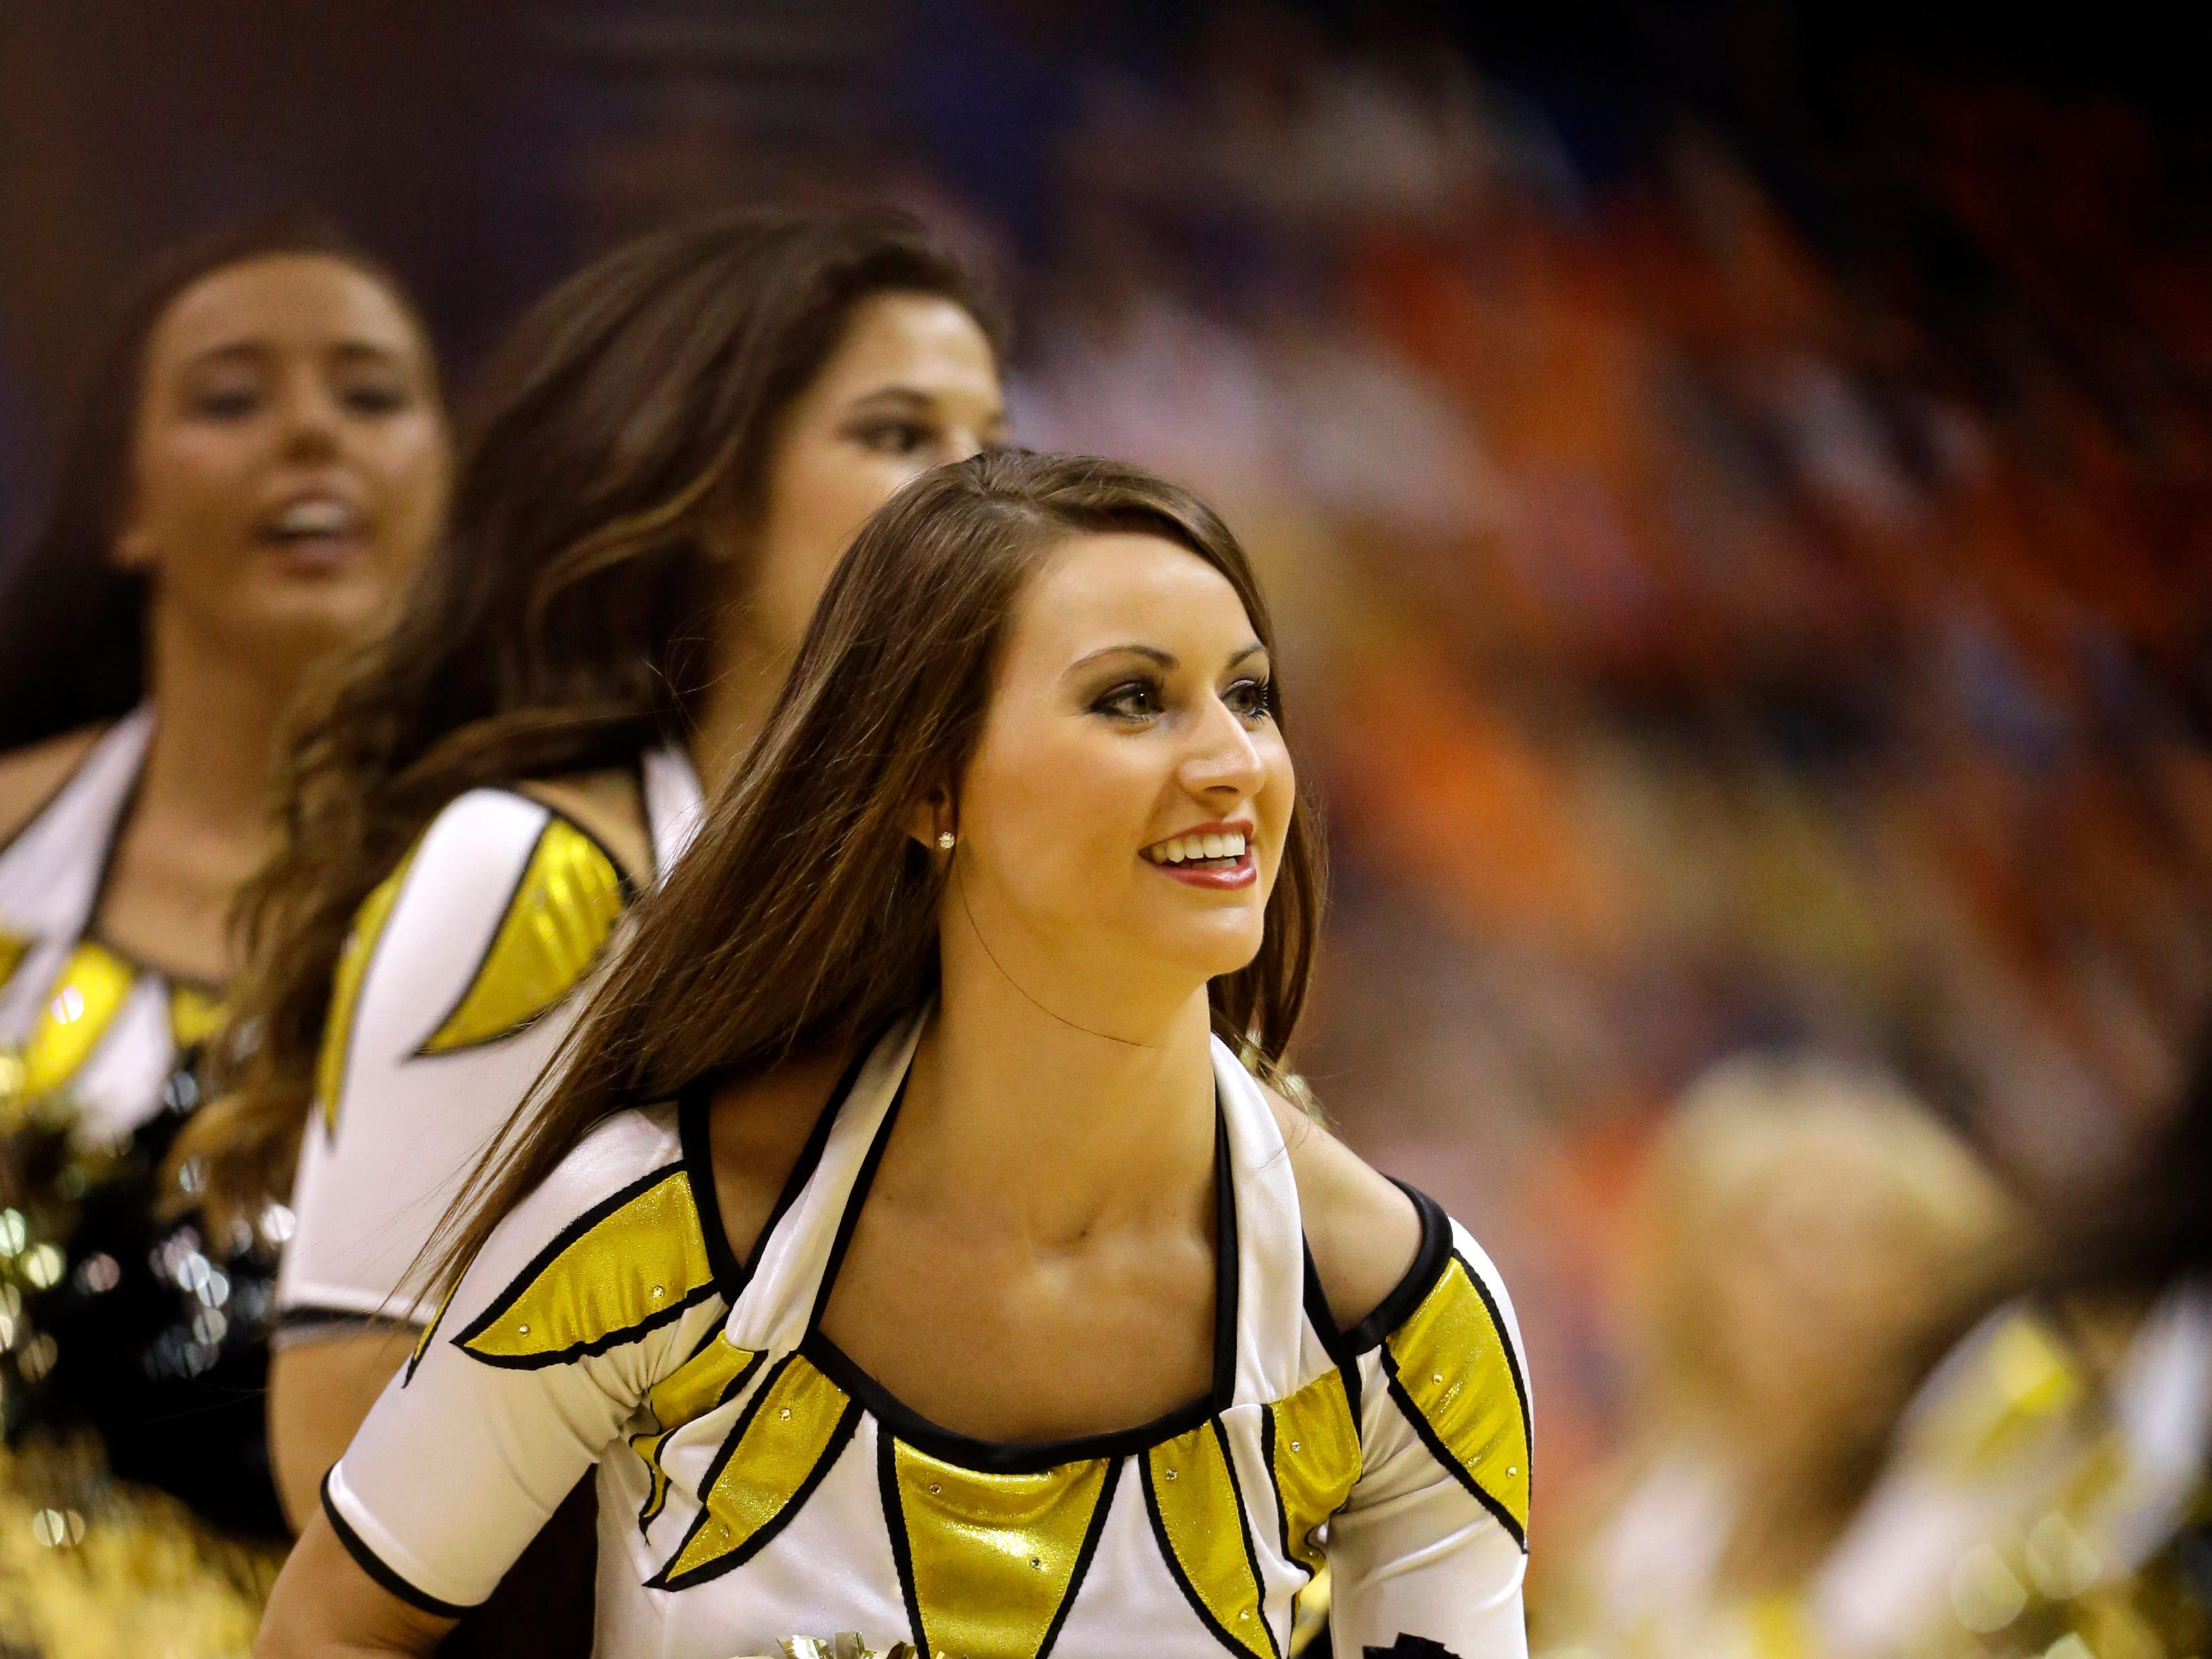 A Missouri cheerleader performs during the second half of an NCAA college basketball game between Missouri and Illinois Wednesday, Dec. 23, 2015, in St. Louis. Illinois won 68-63.